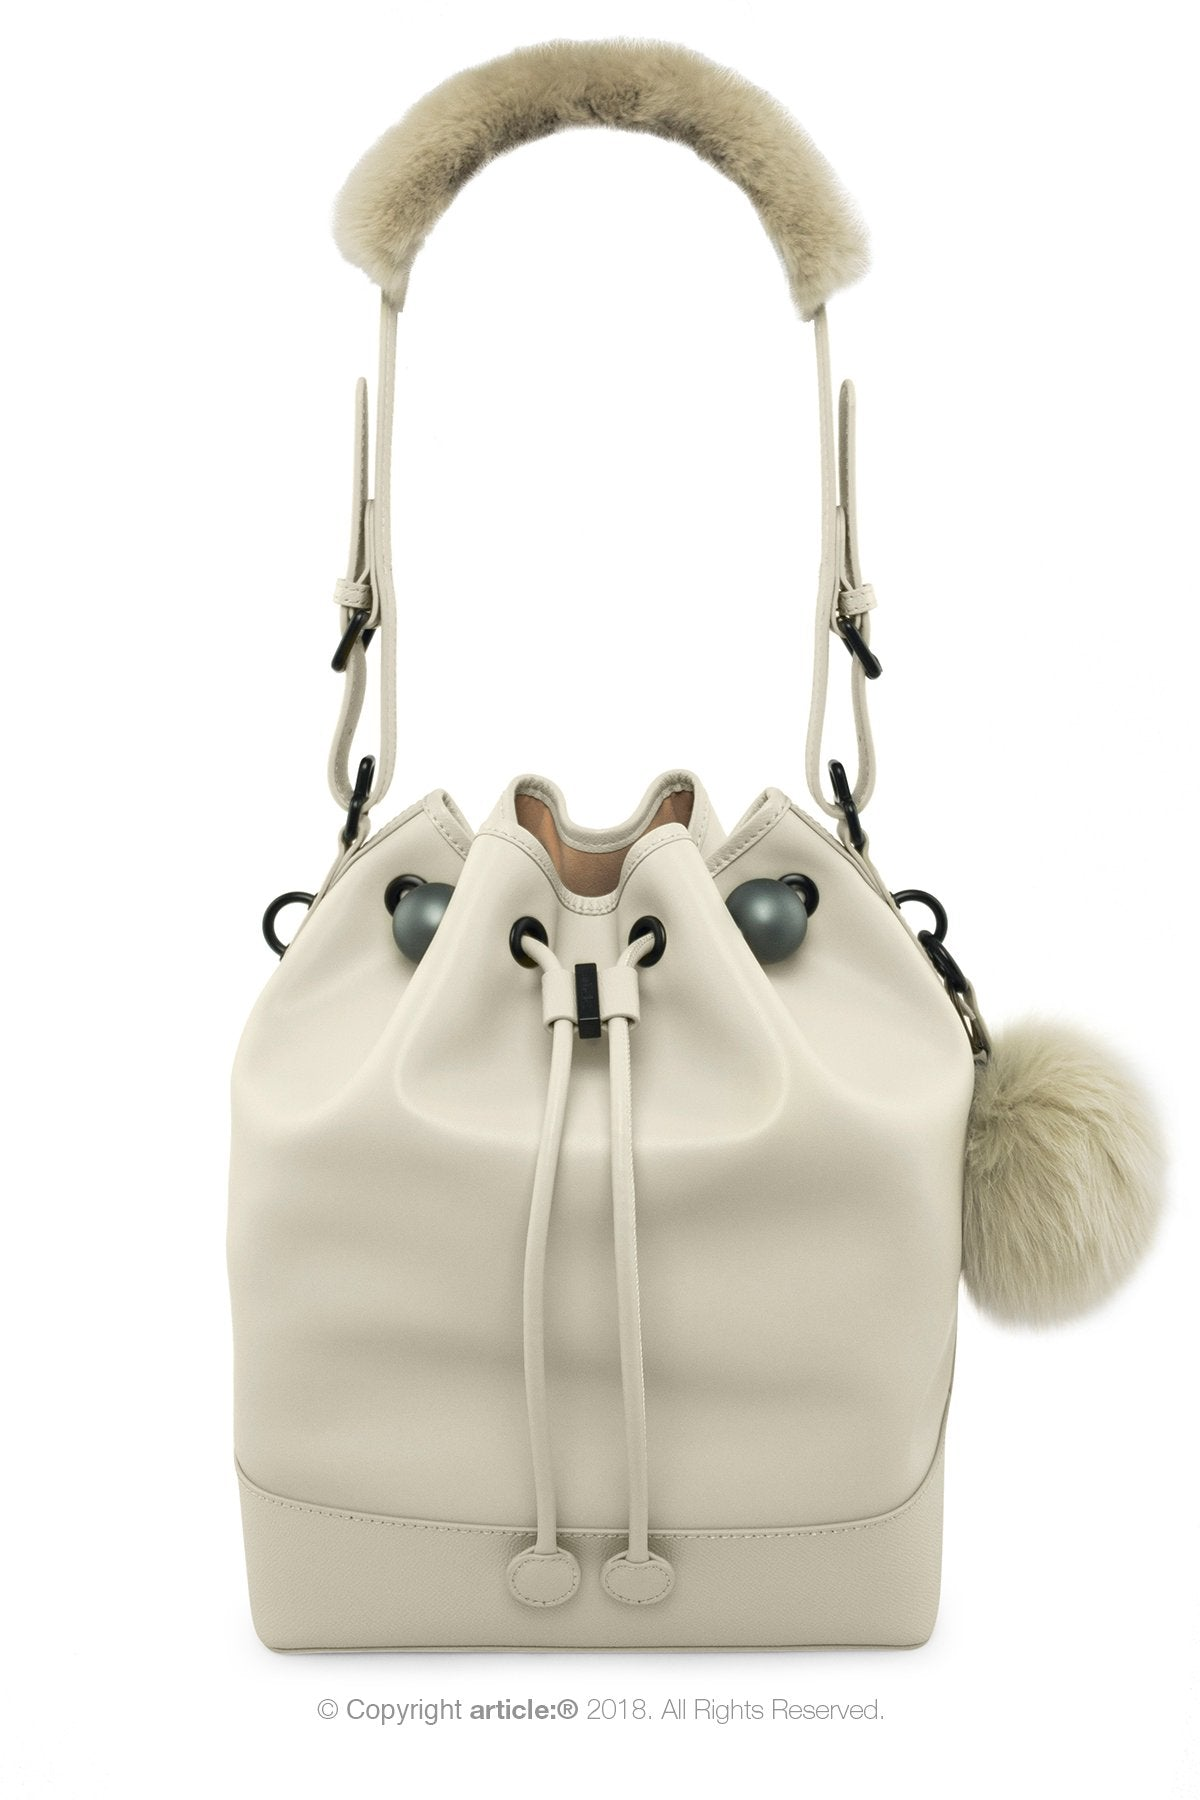 article: #120 Handbag Grande Bucket - Oyster